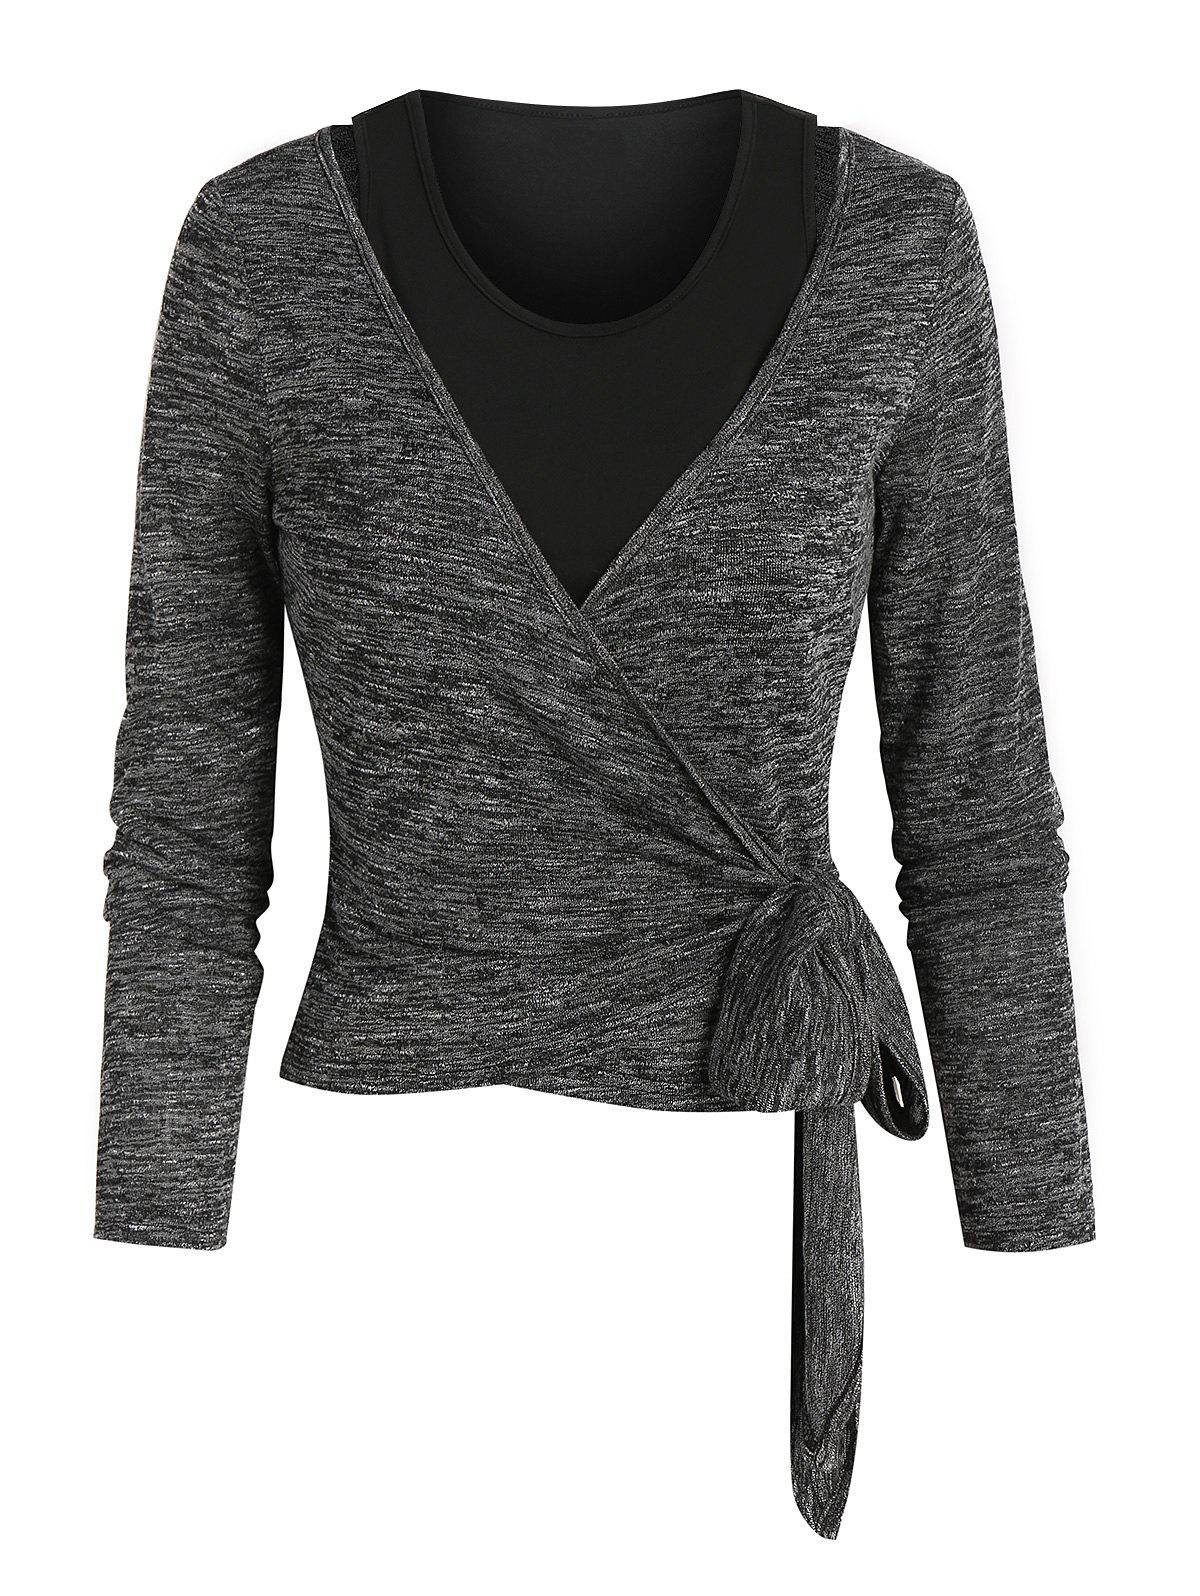 Store Knotted Heathered Wrap T-shirt and Cropped Tank Top